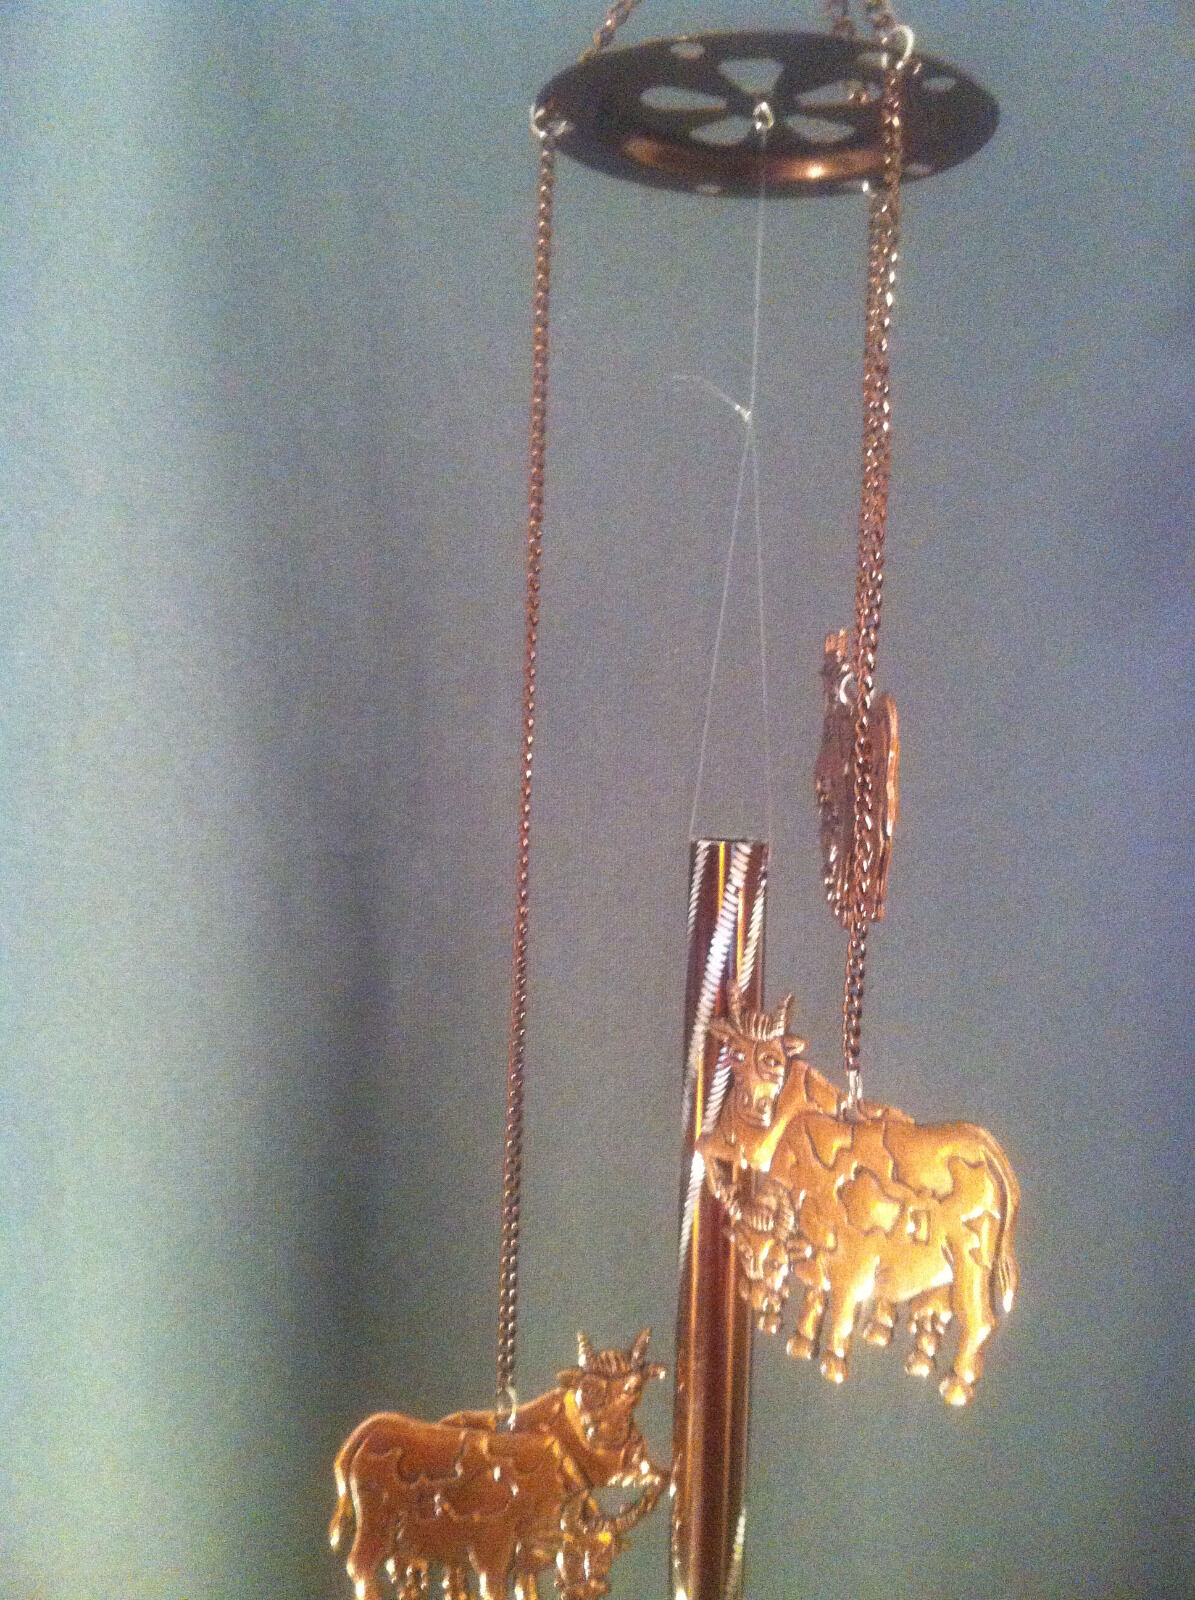 Cadona Pewter-Like Copper 3 Cows Wind Chime